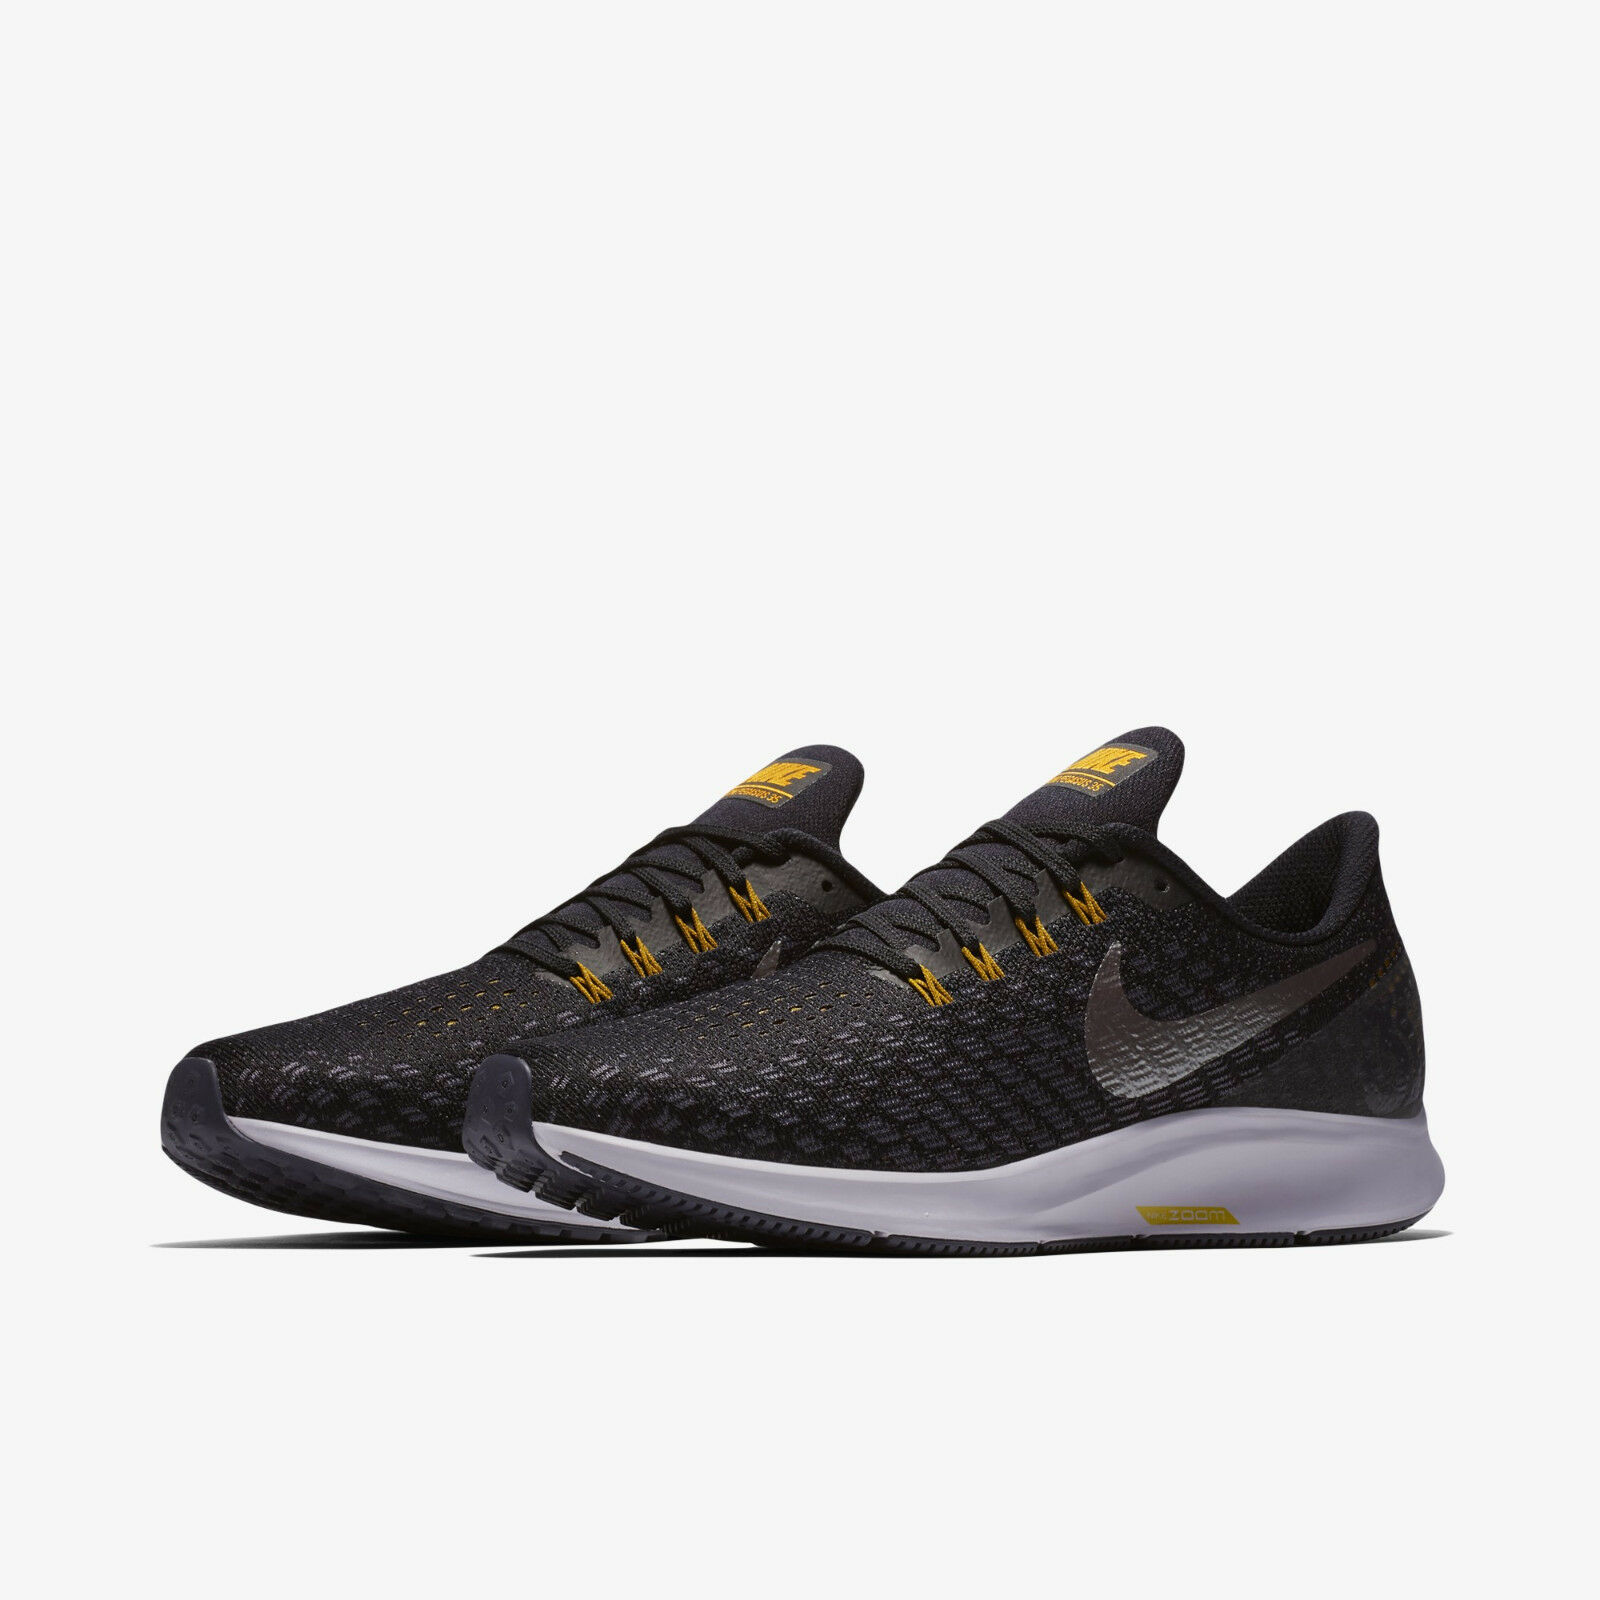 Nike Air Zoom Pegasus 35 942851-013 942851-013 942851-013 nero Metallic Grid Iron Uomo Running scarpe c1464b